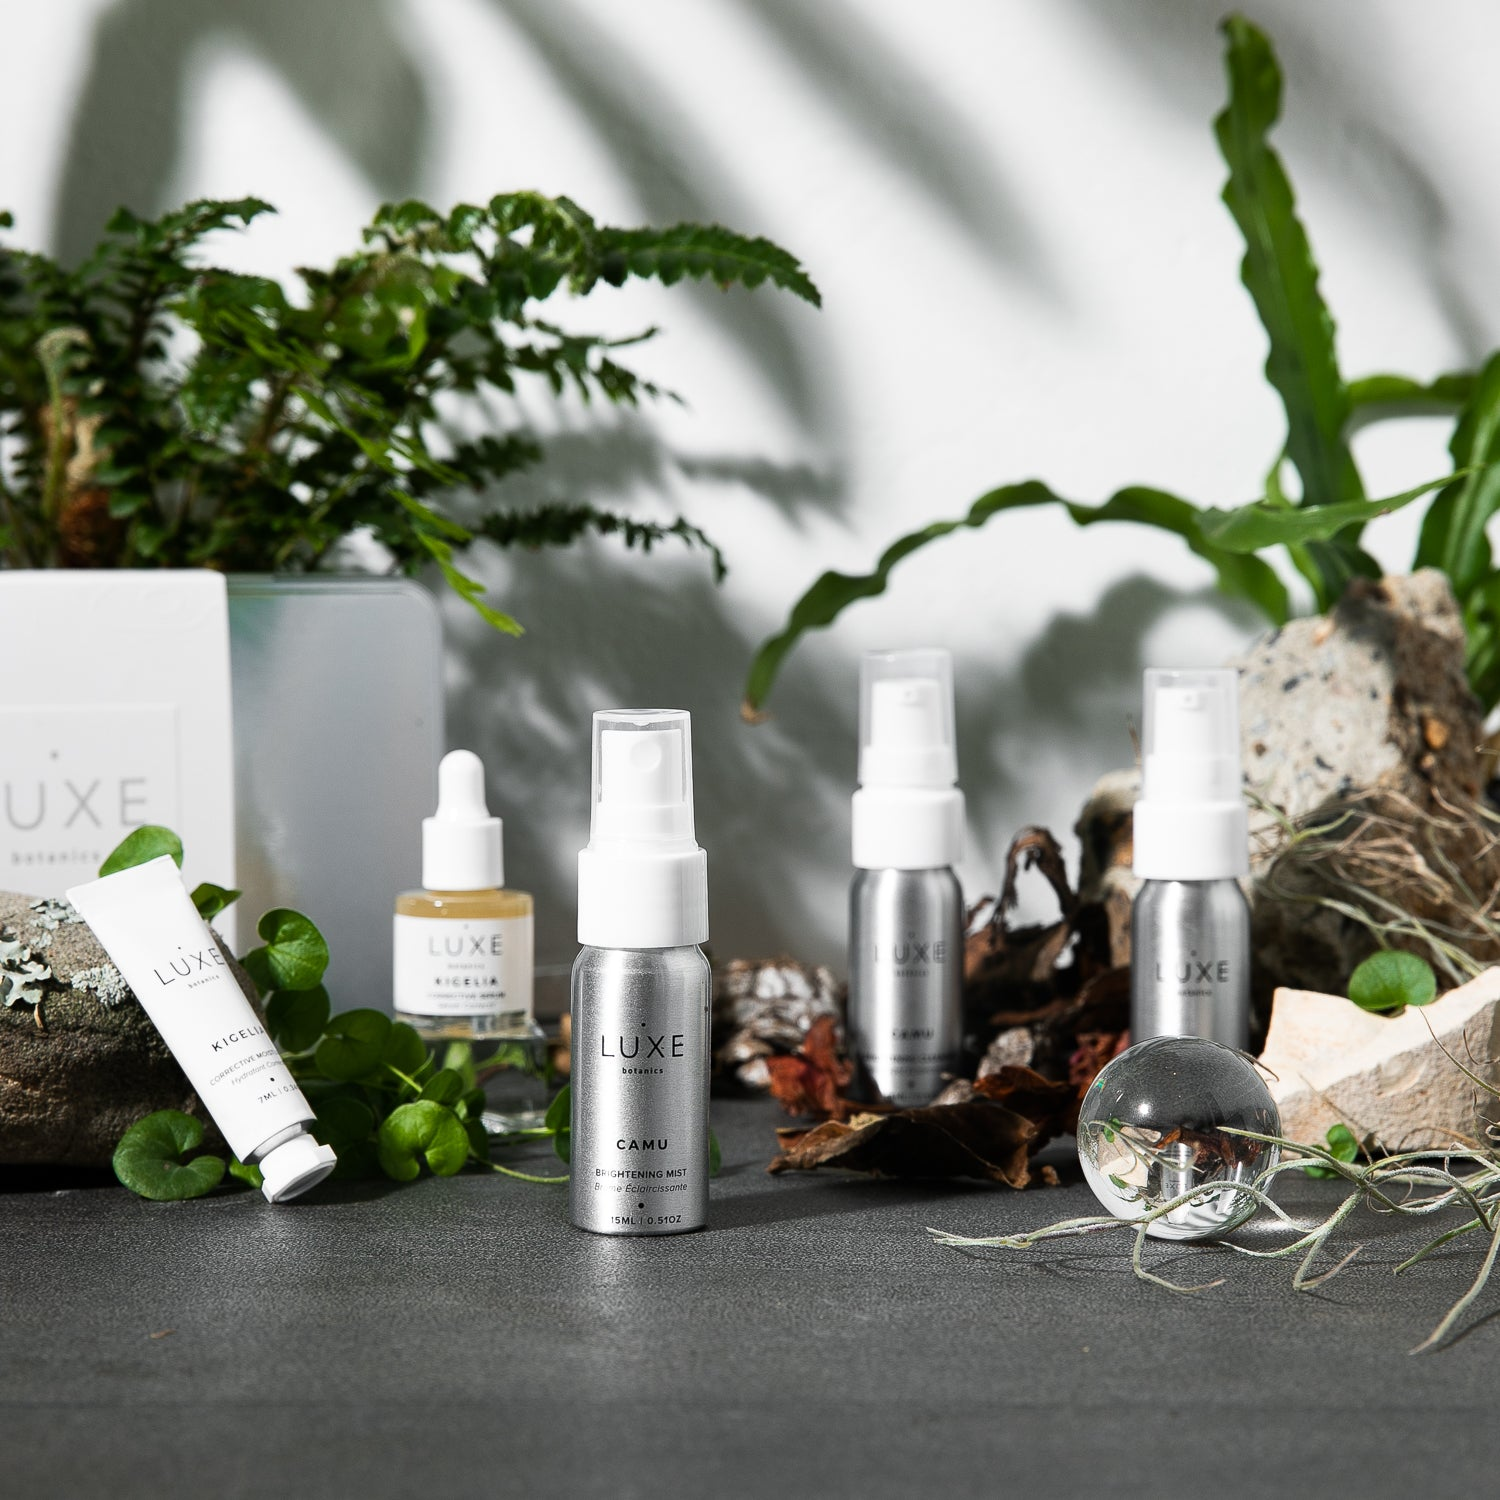 luxe-botanics-discovery-kit-rainforest-revival-uk-organic-skincare